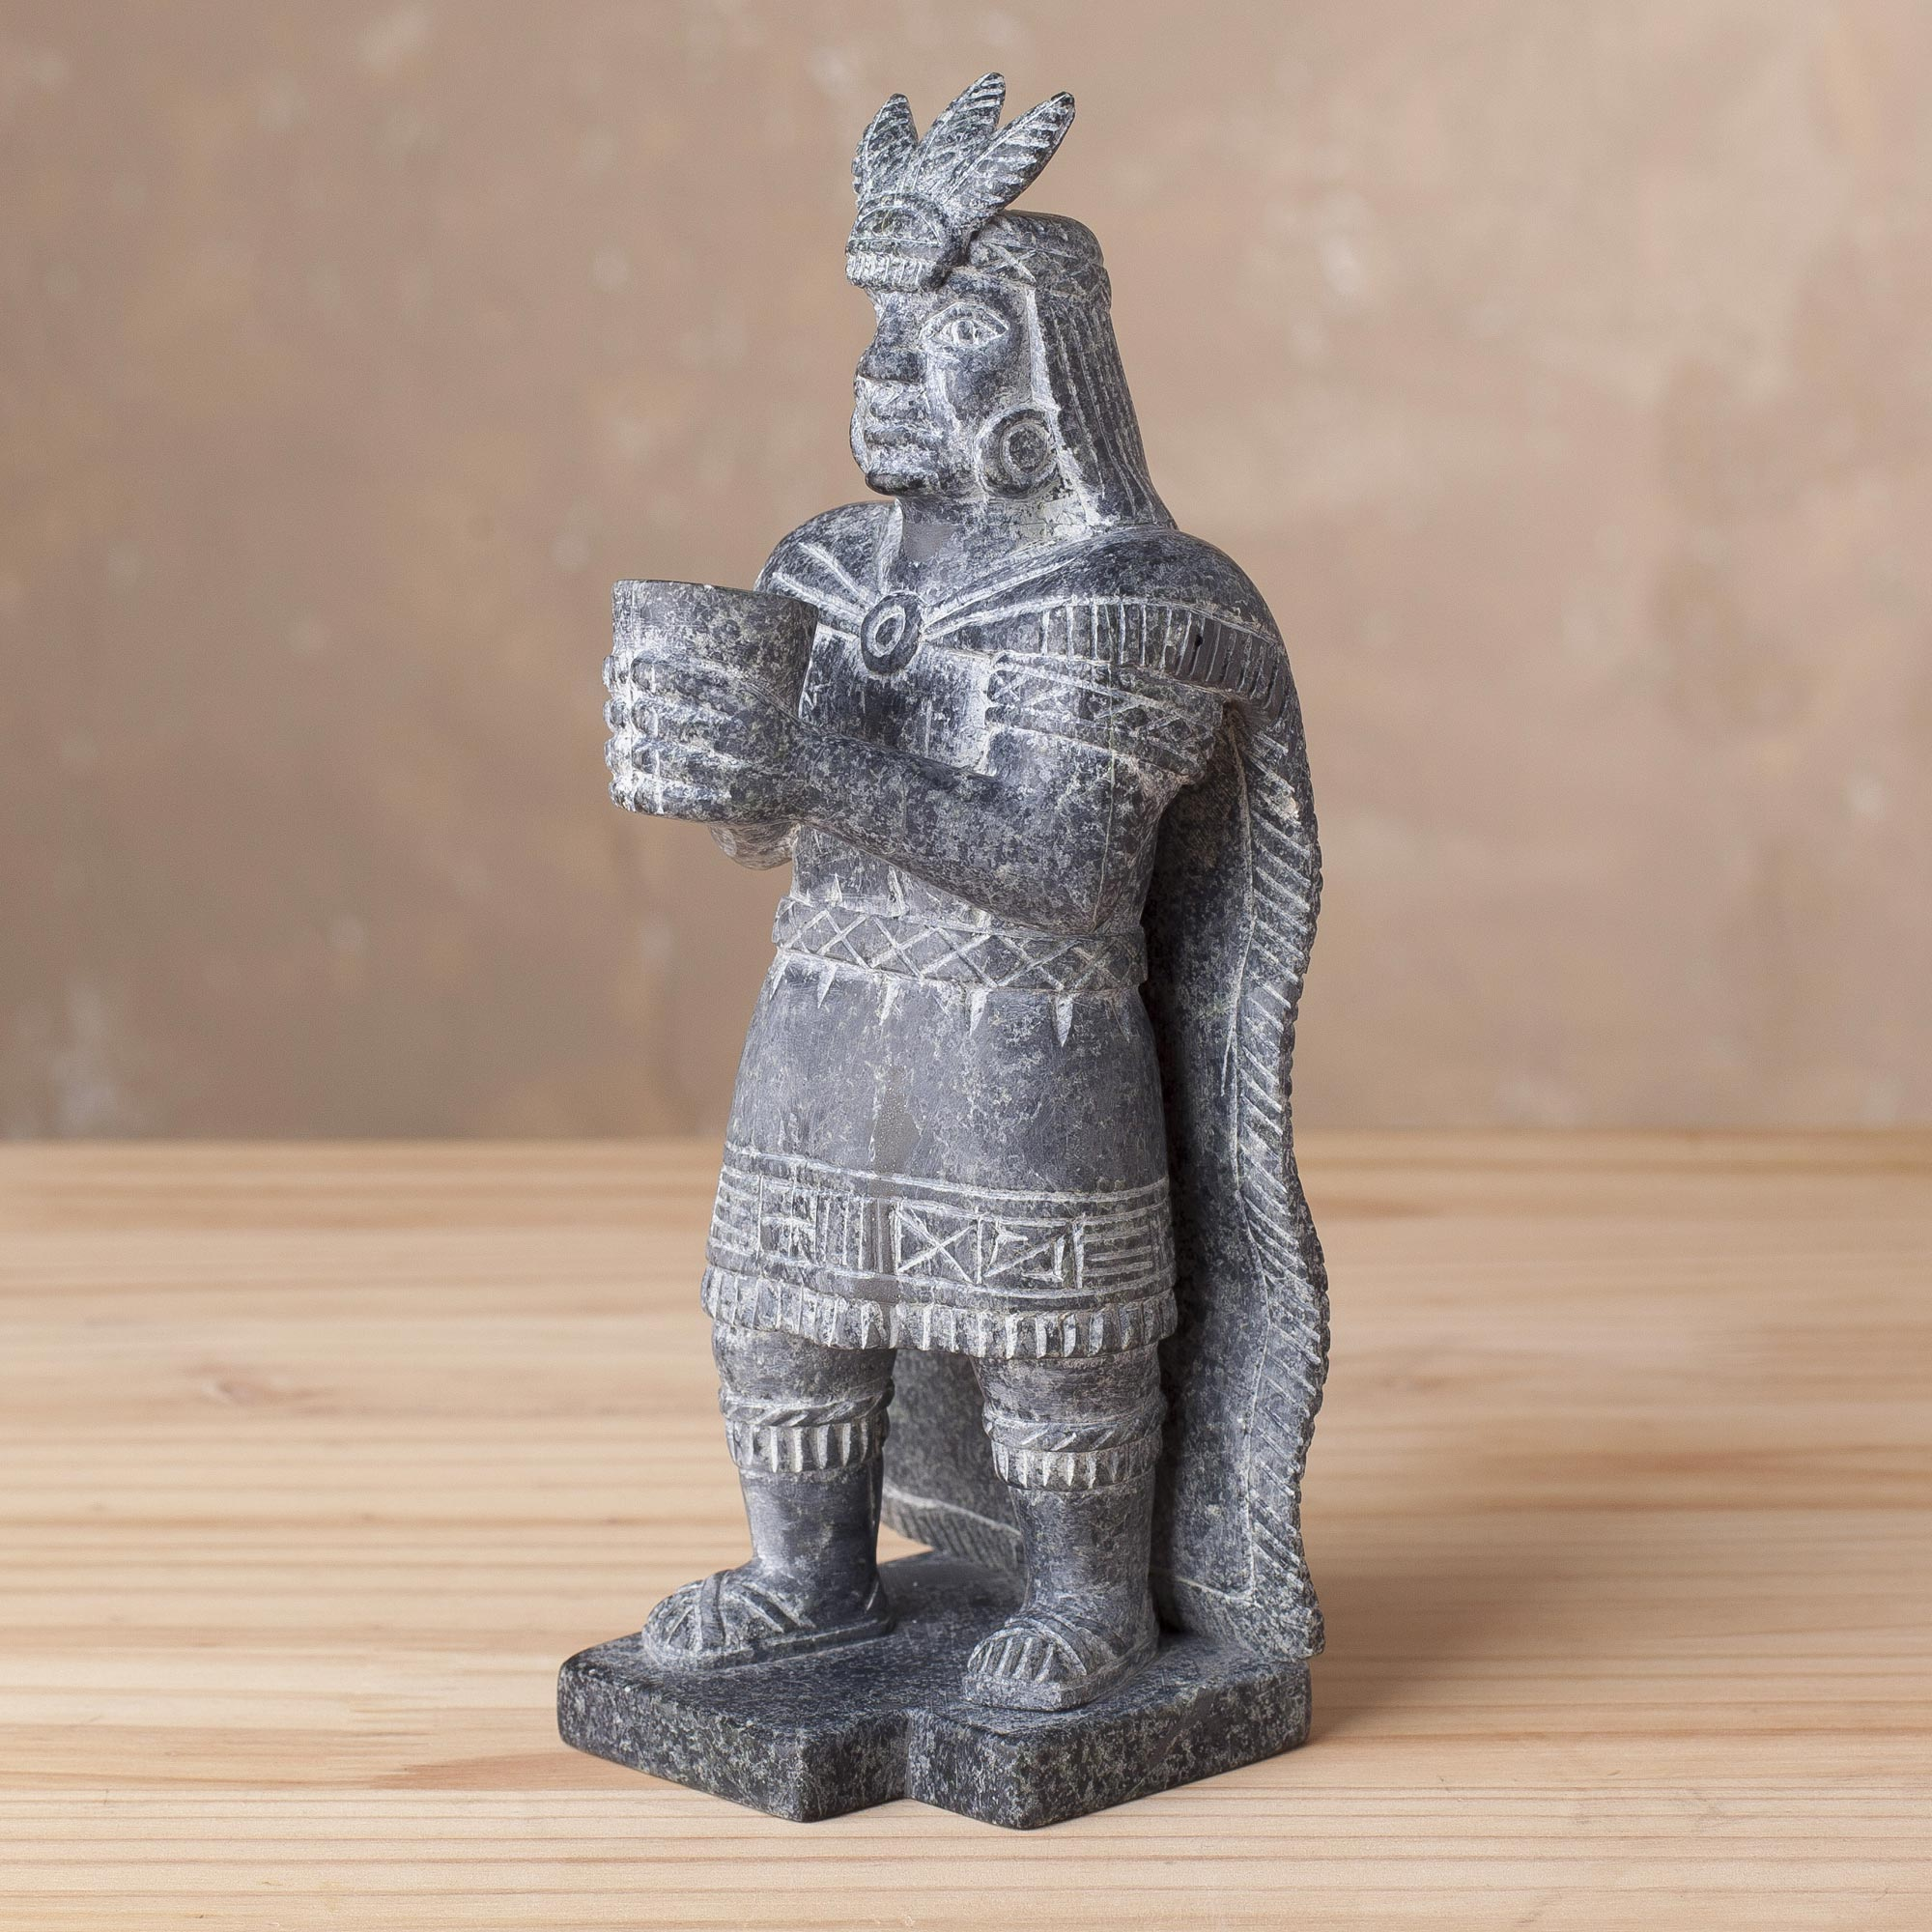 Inca offering Cultural Serpentine Stone Inca Sculpture from Peru hand carved art Stone Carver descended from Inca Warriors